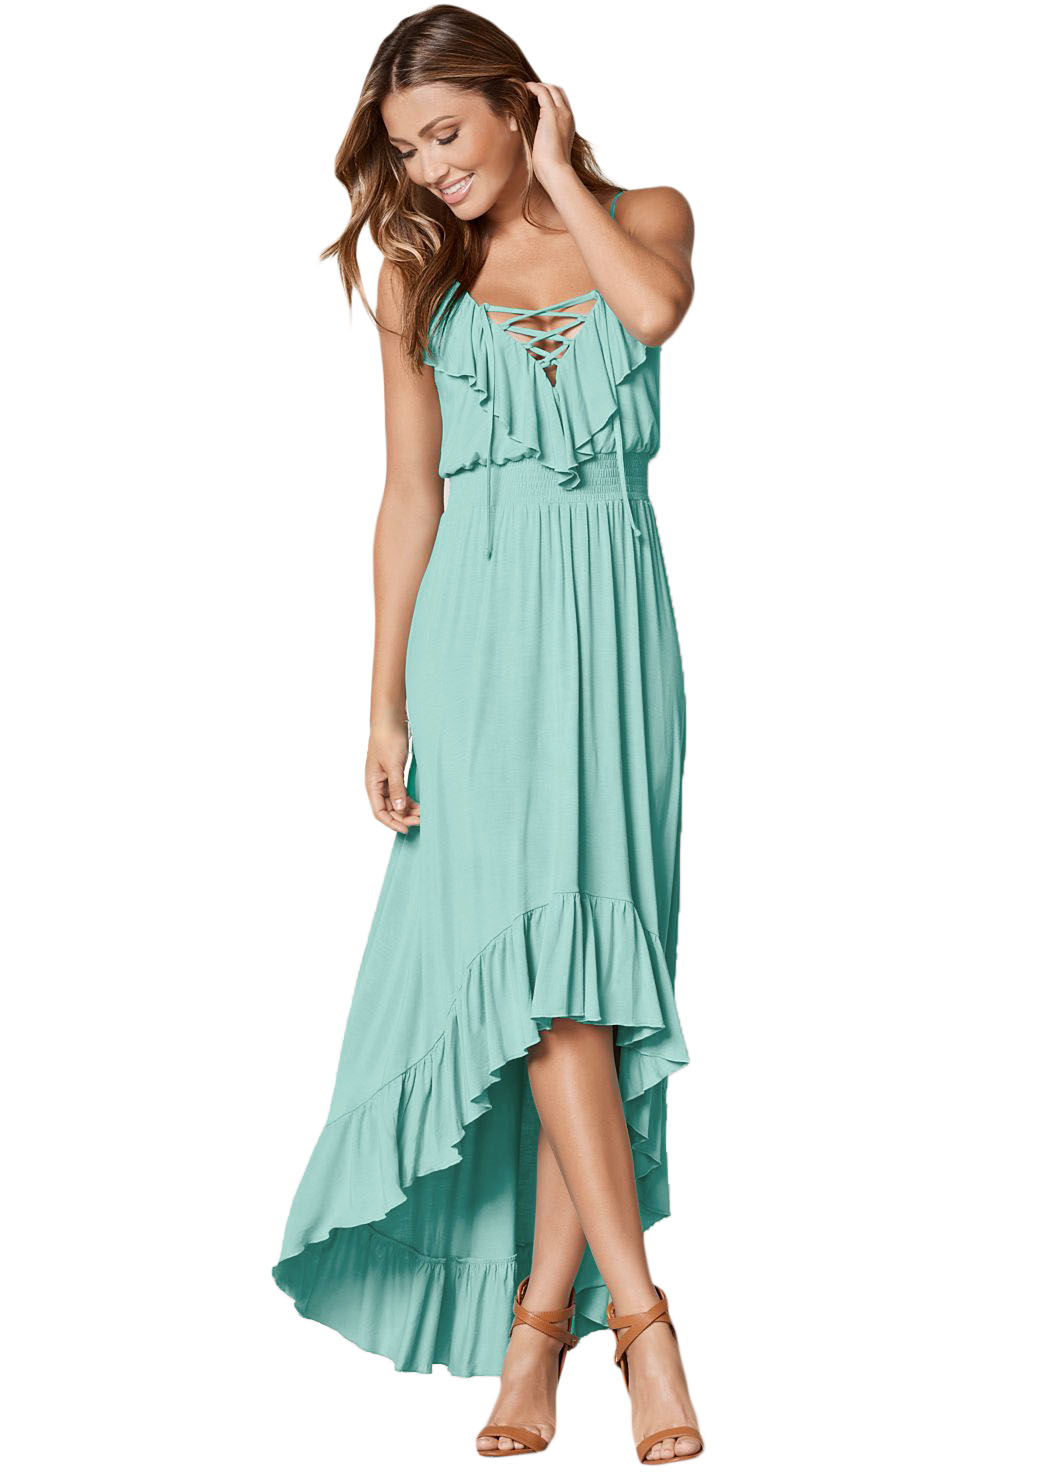 US$37.75 Zkess Mint Green Lace Up V Neck Ruffle Trim Hi-low Maxi Dress